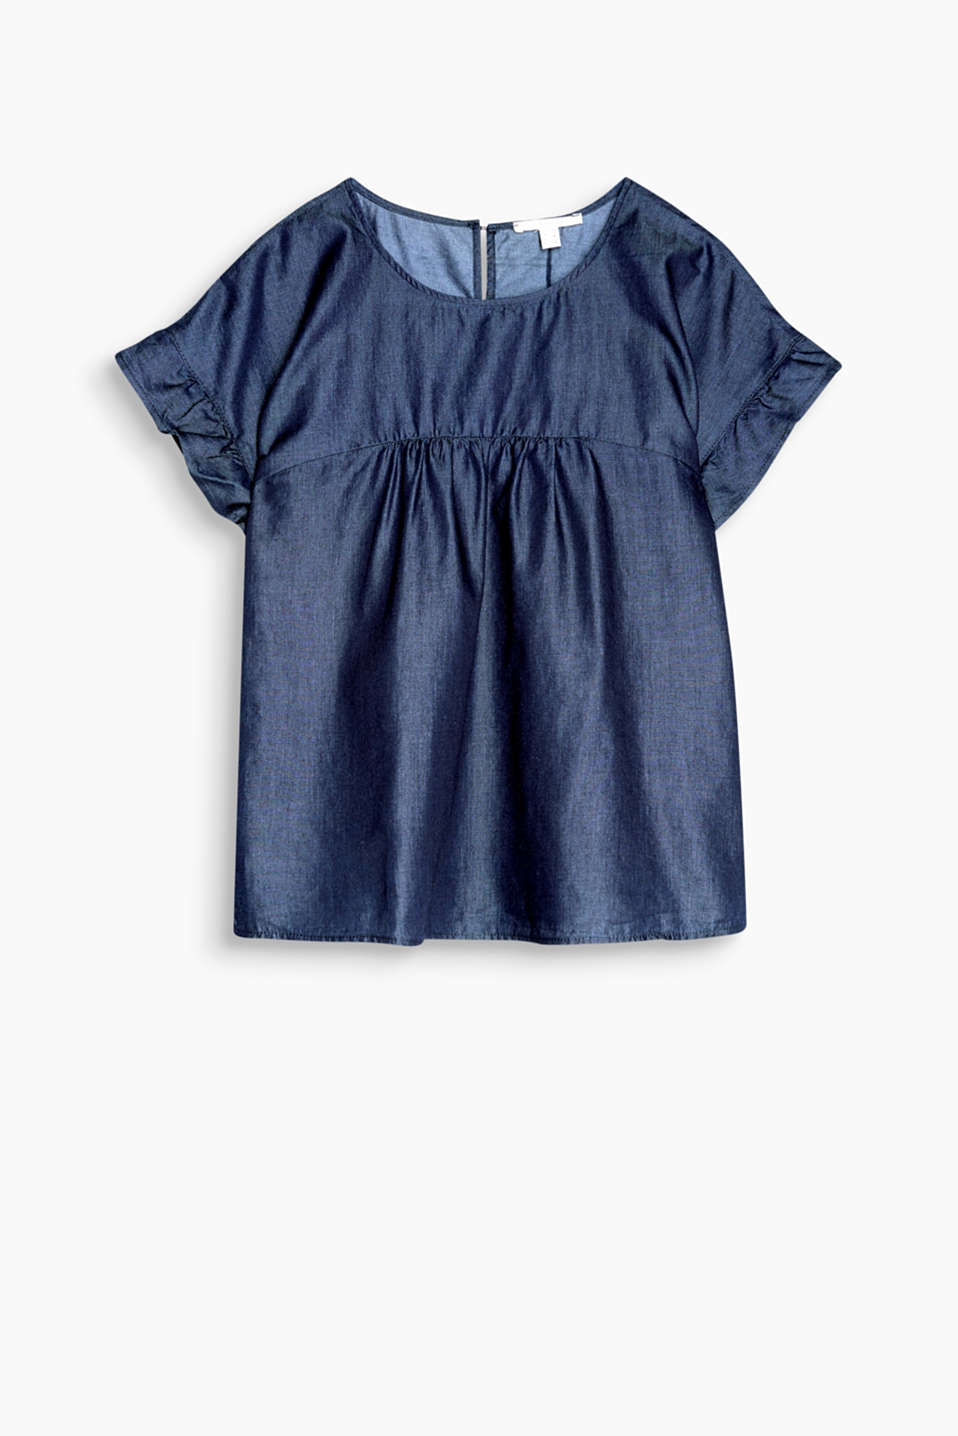 Softly draped blouse in a fashionable denim style with a cut-out on the back and lightly ruched sleeves